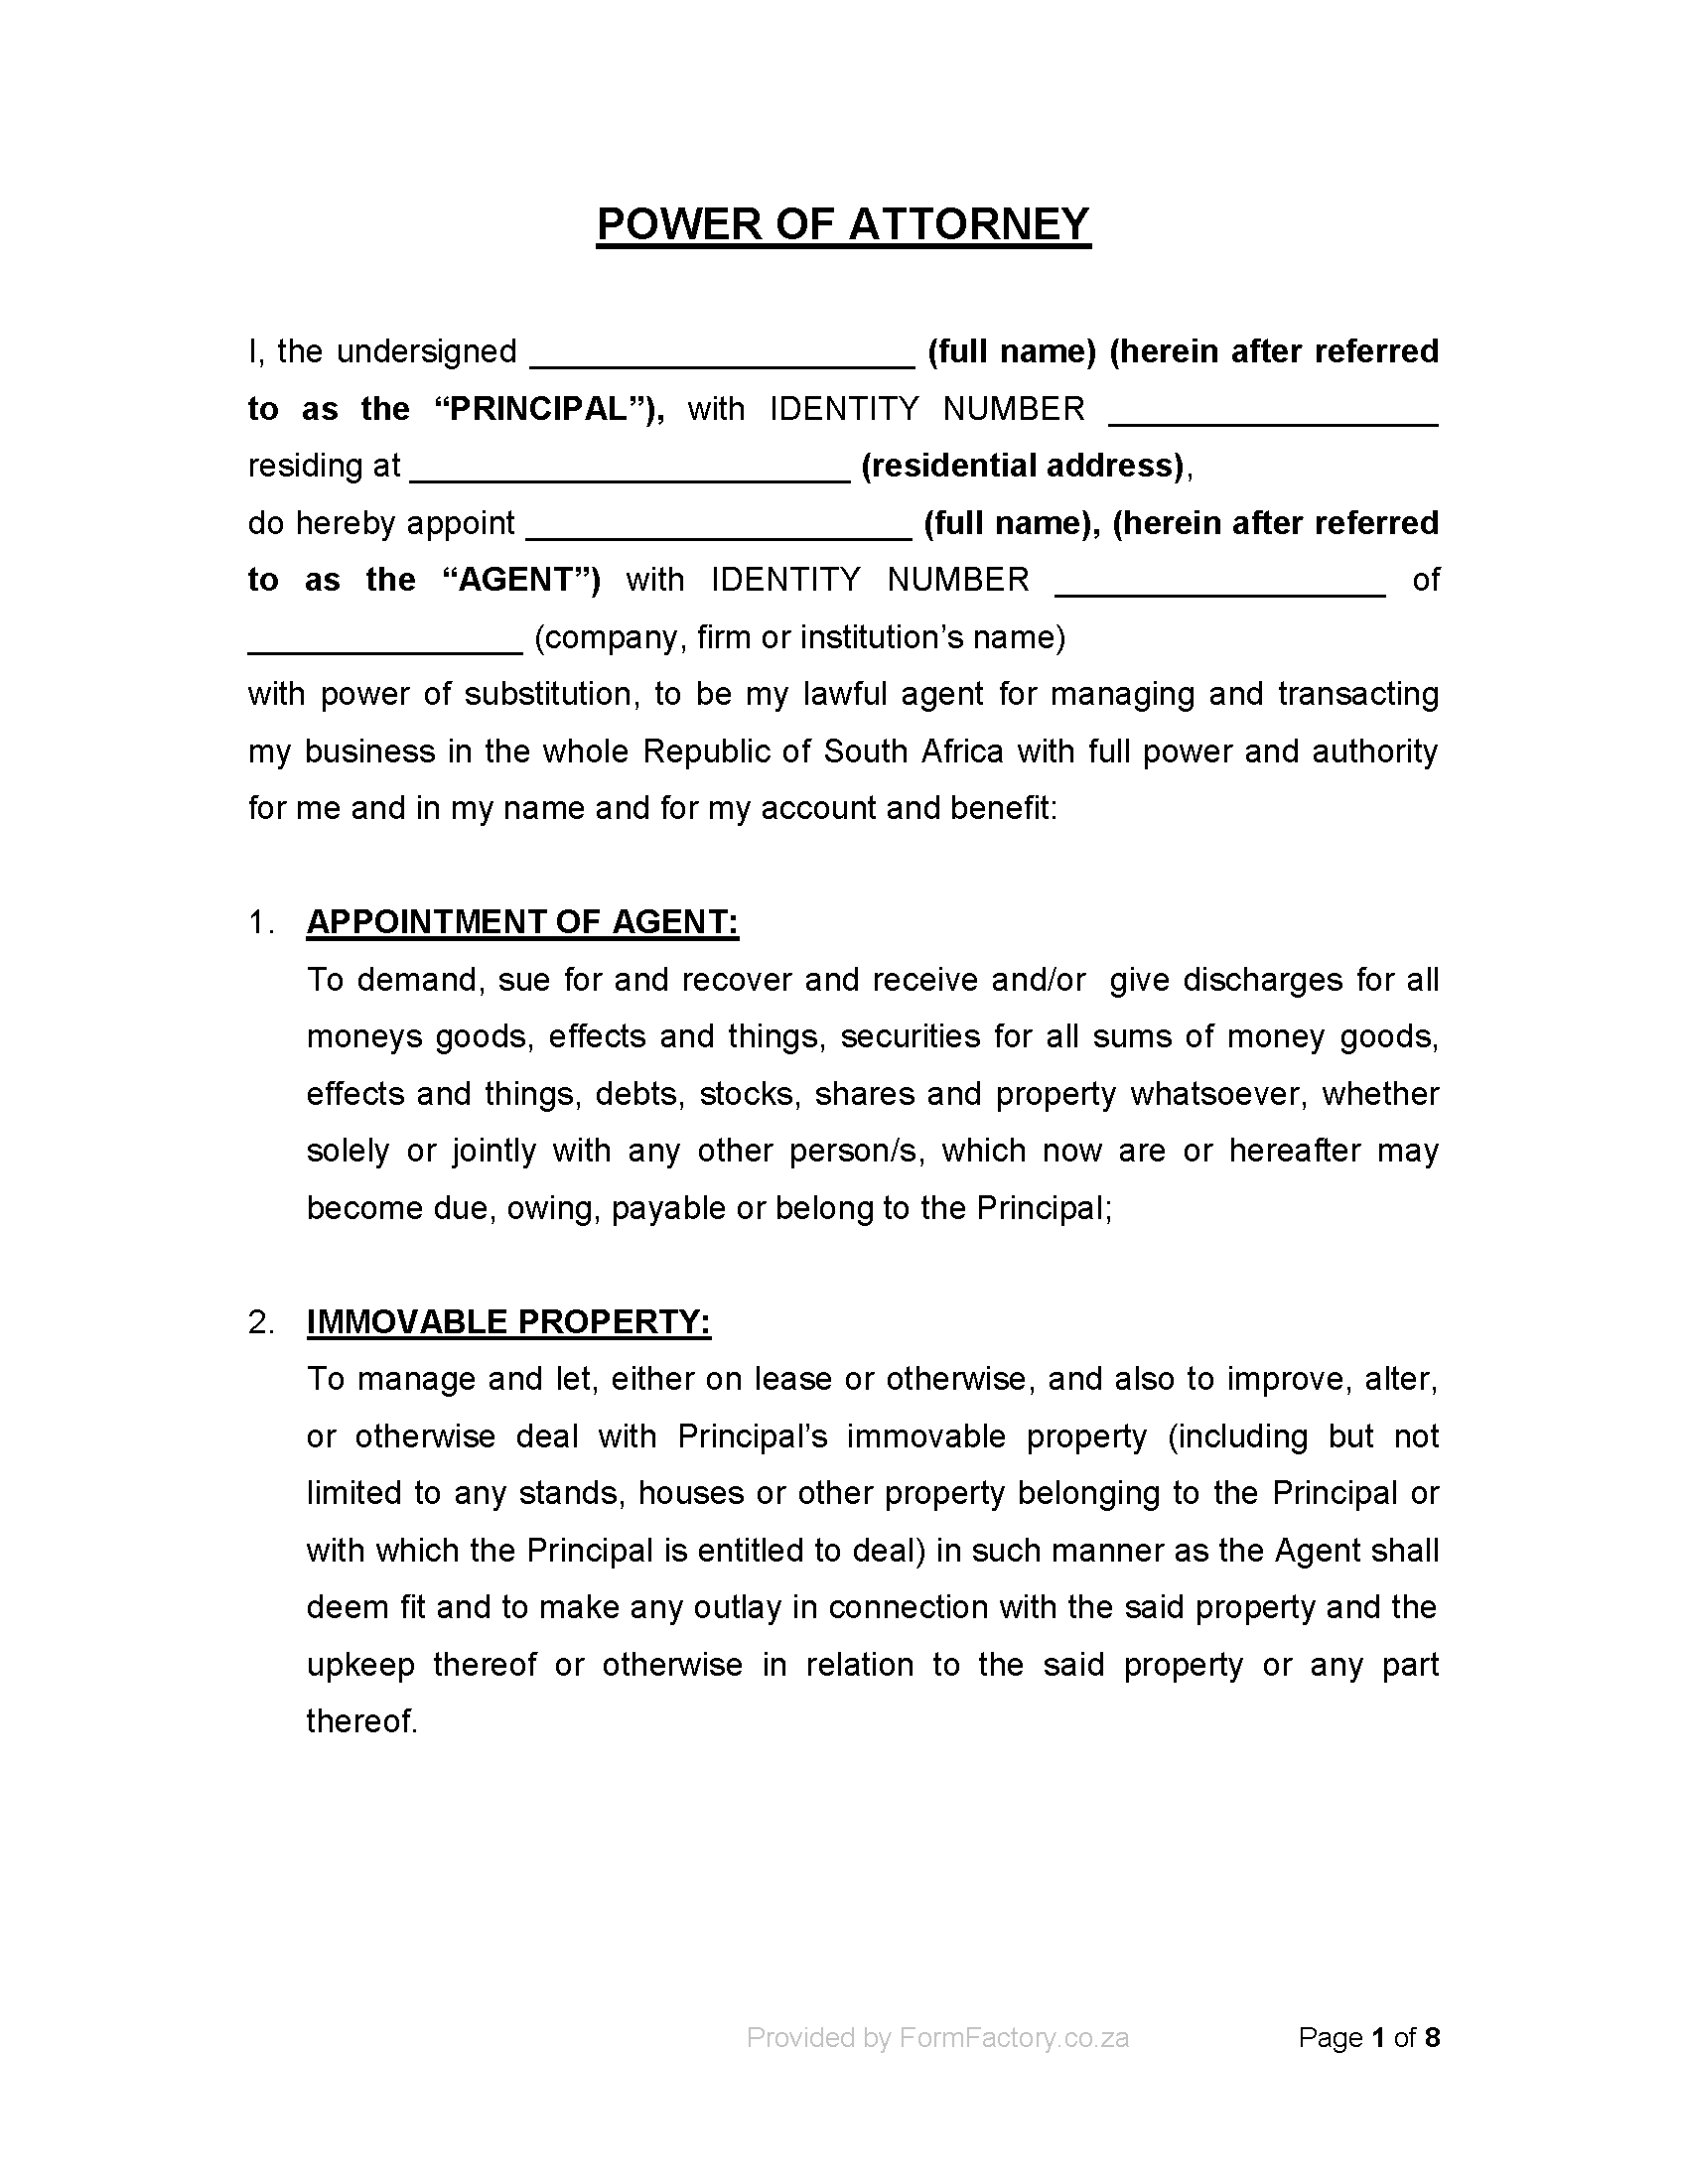 Download special power of attorney form formfactory for Special power of attorney template free